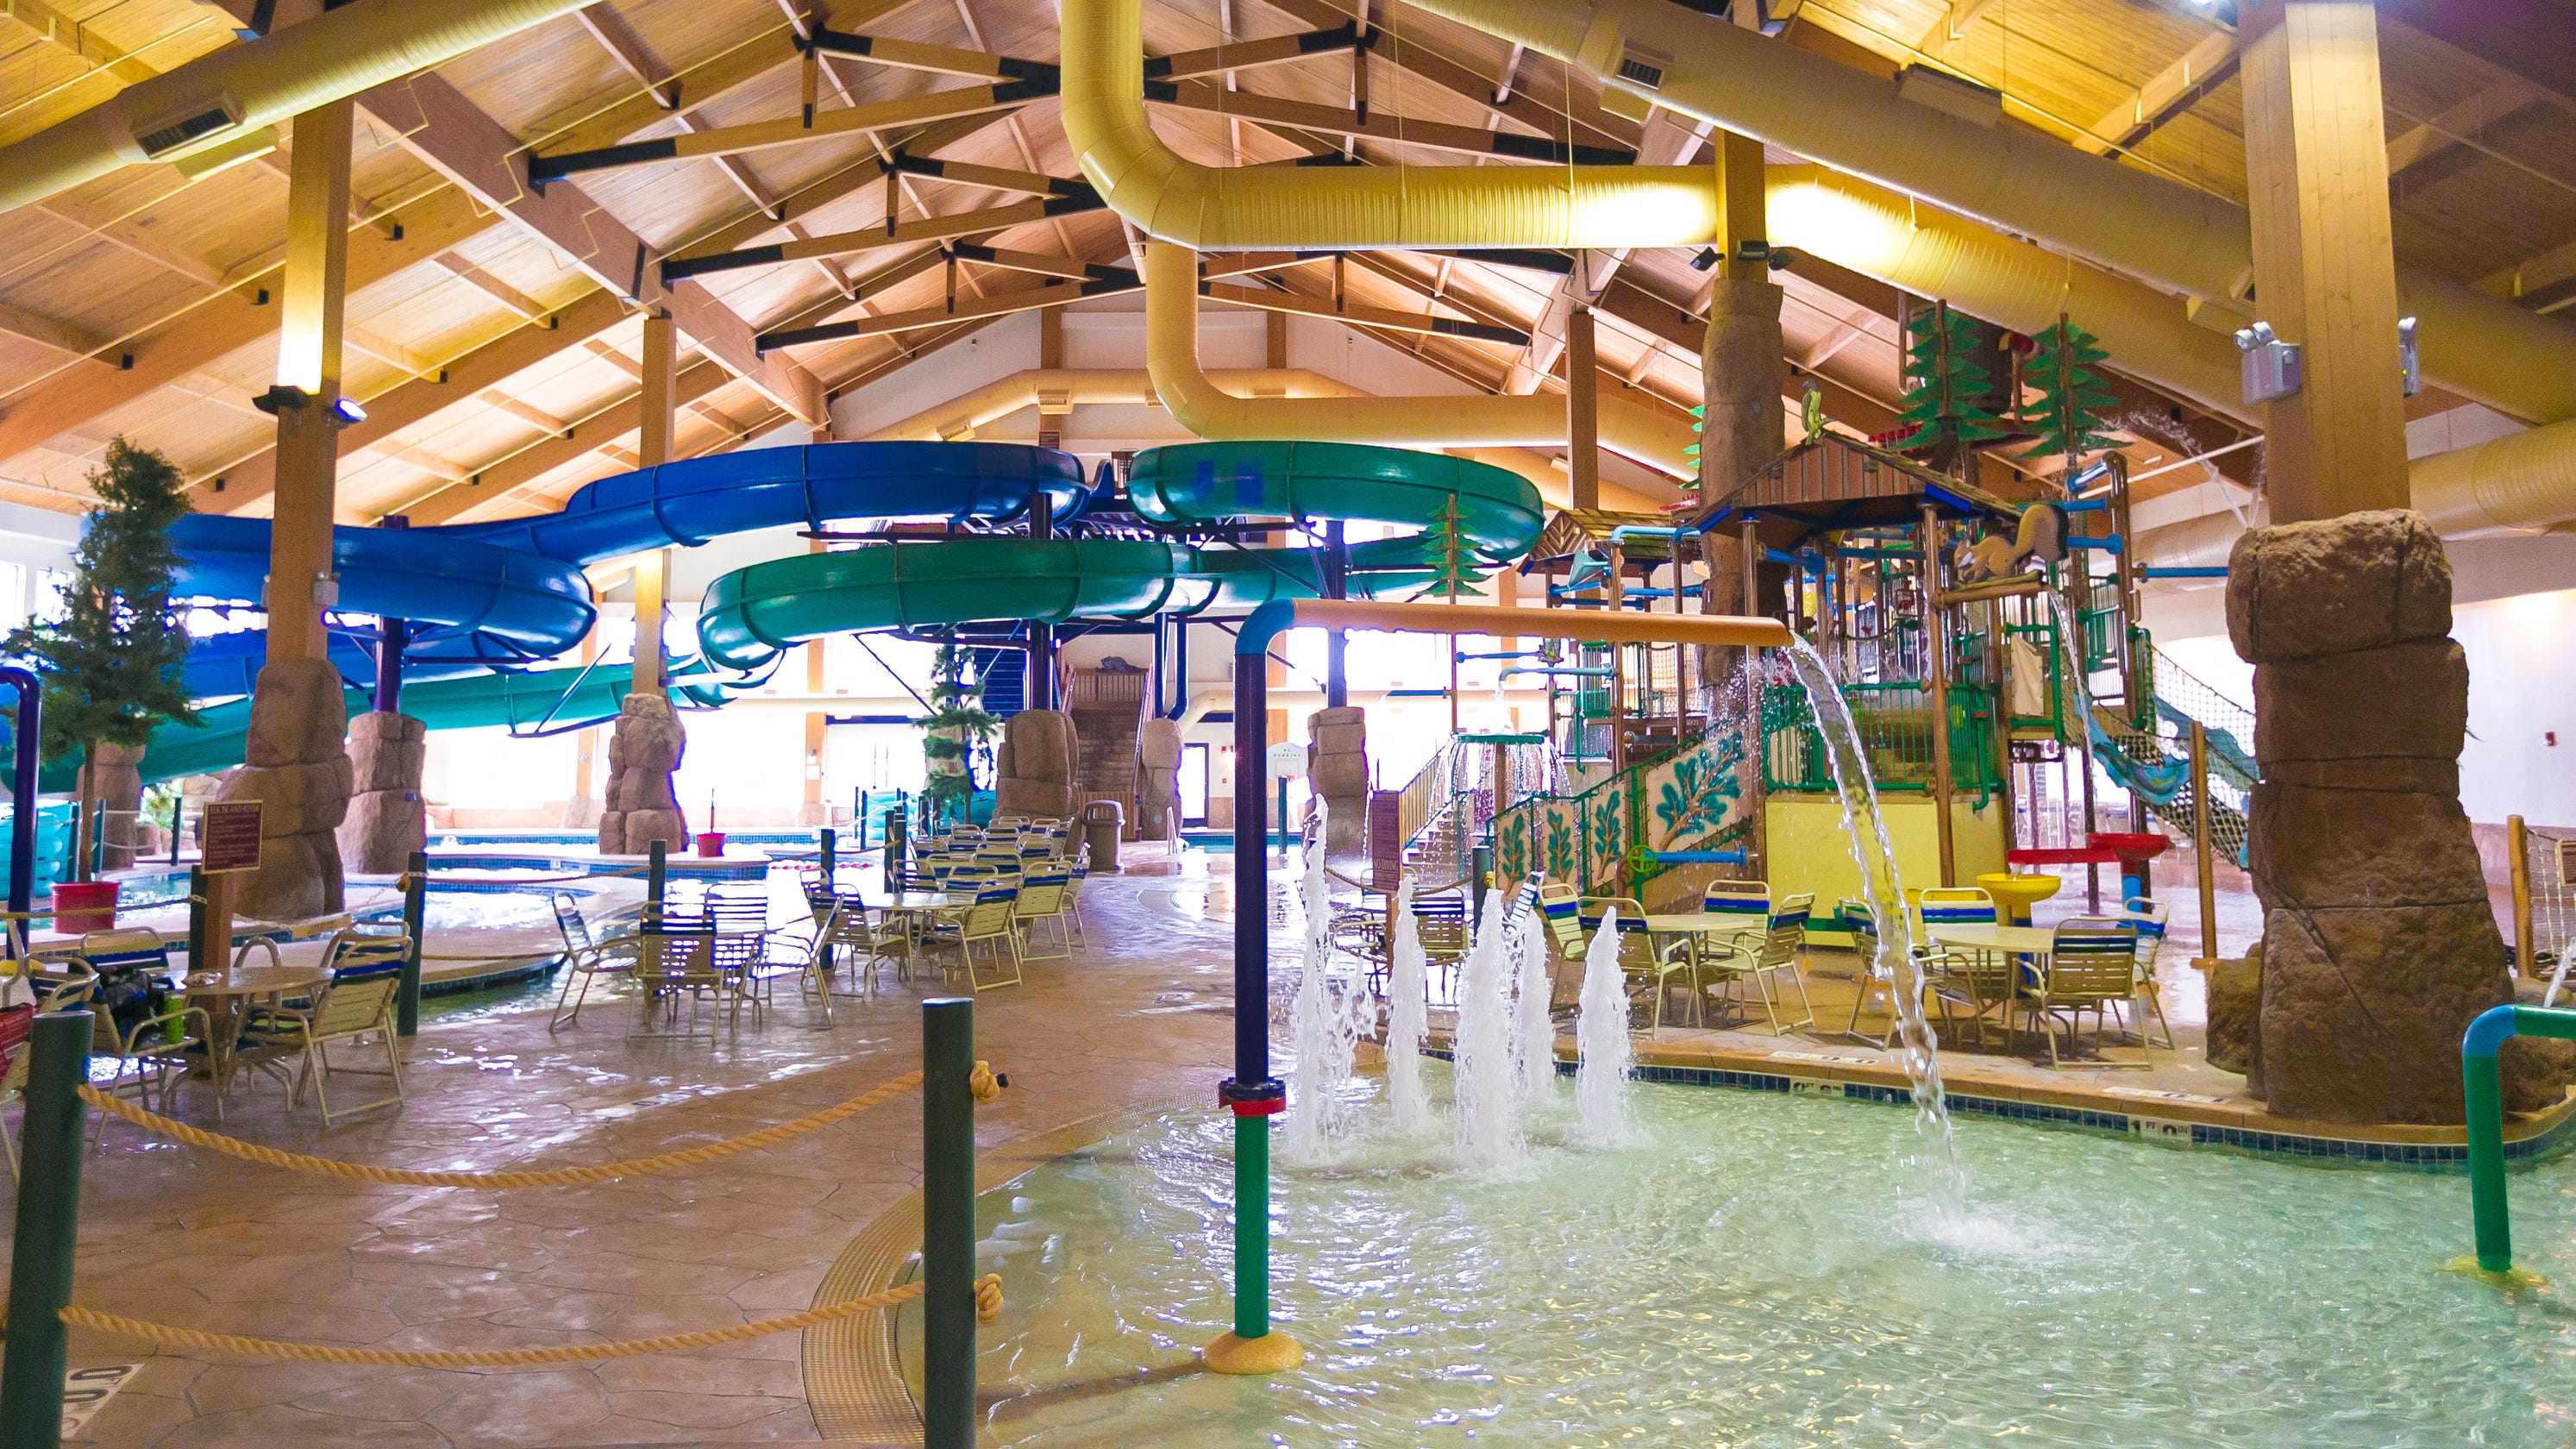 Wisconsin Indoor Waterparks Provide A Dose Of The Tropics In Winter